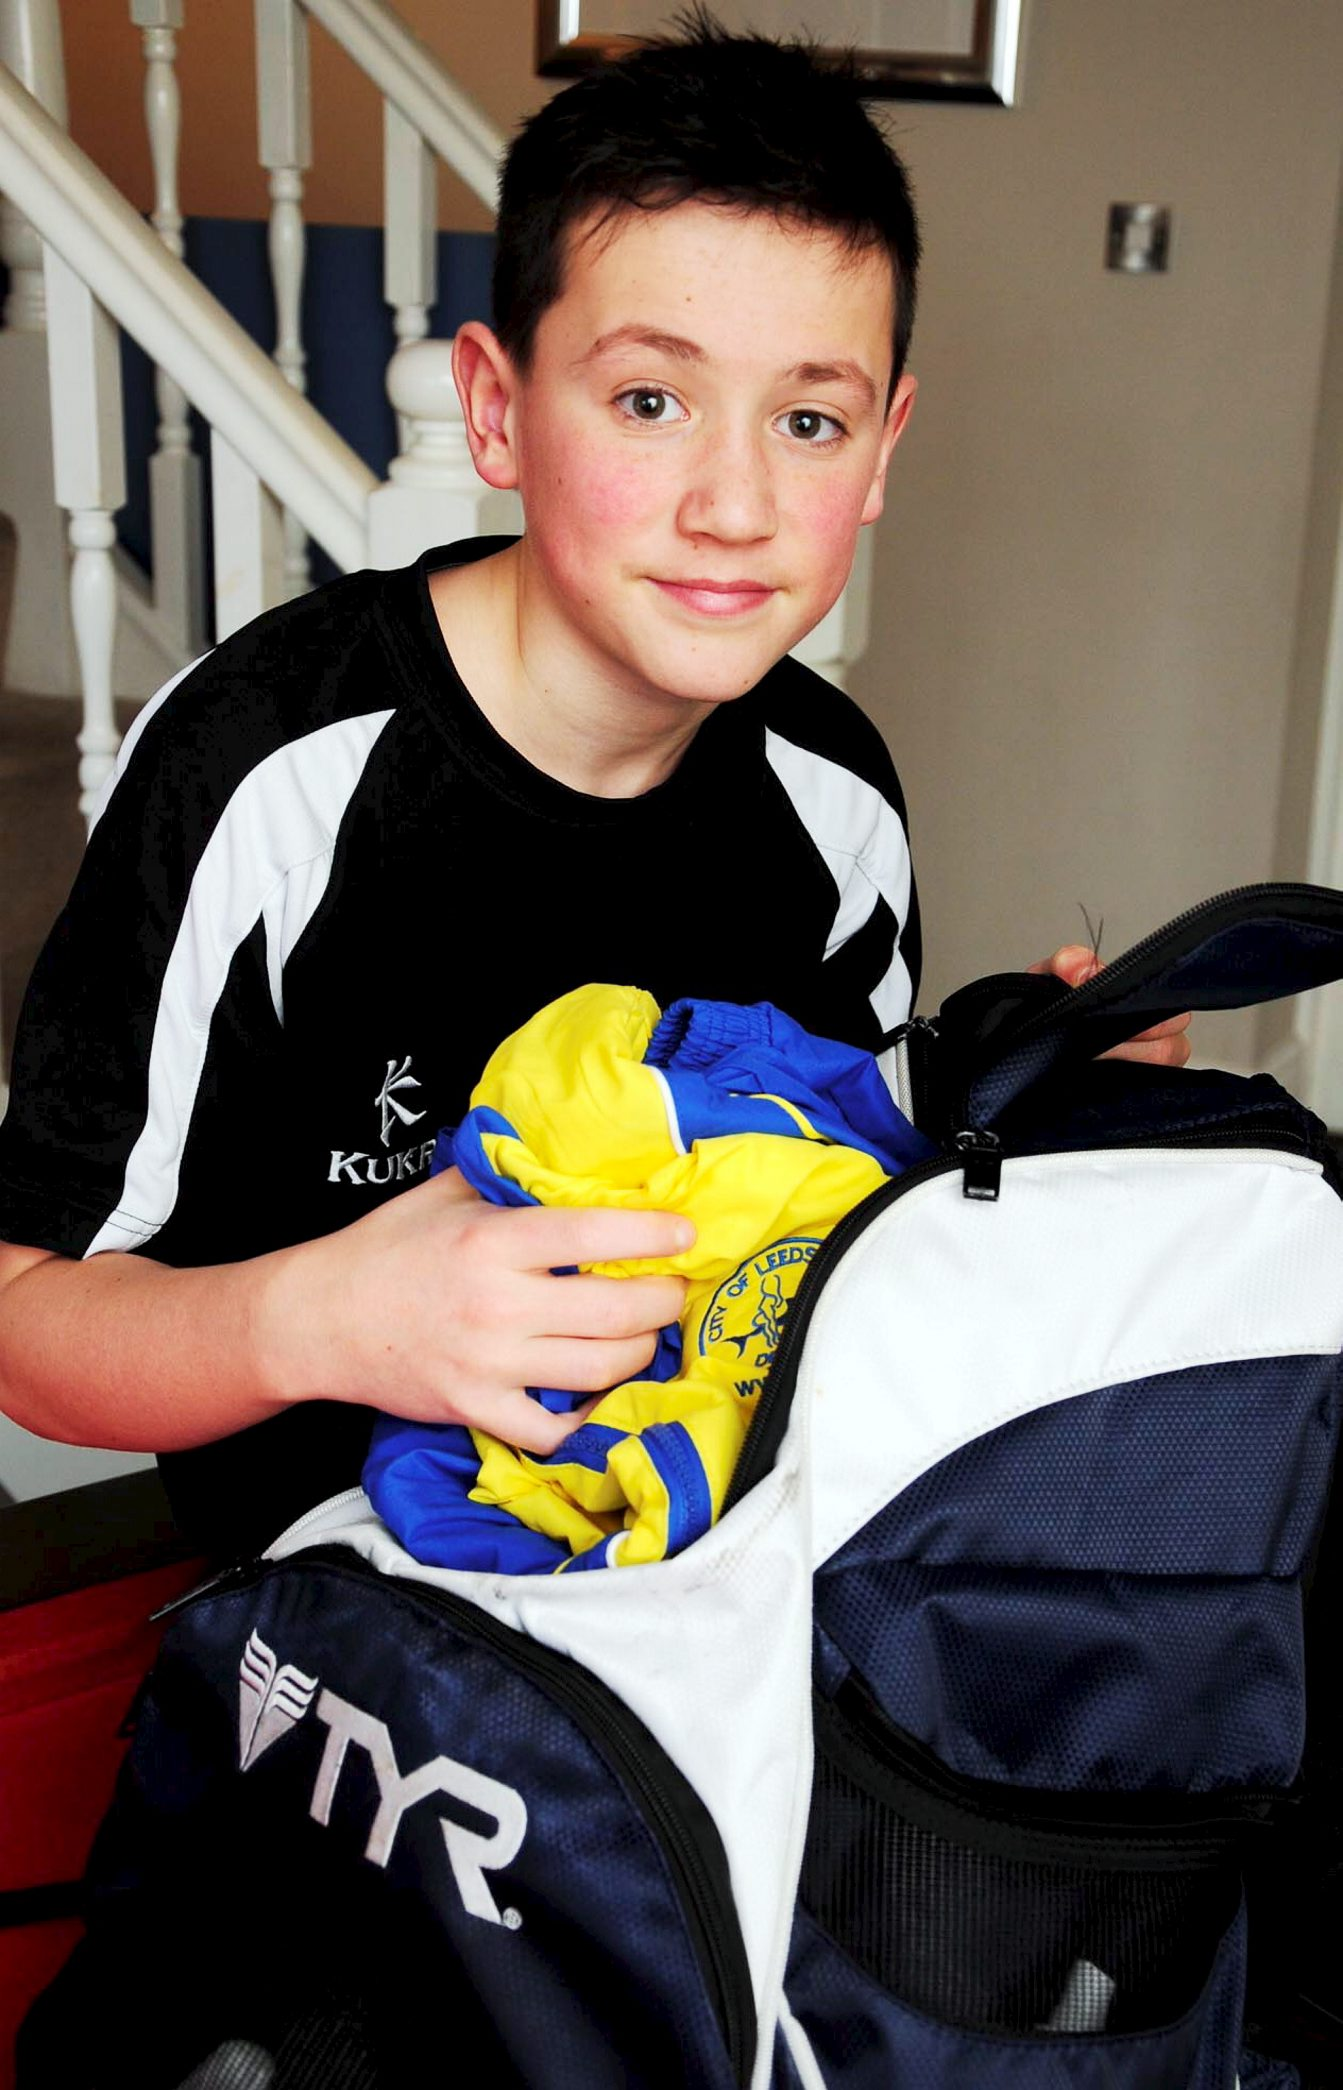 Oliver Crompton with his diving gear